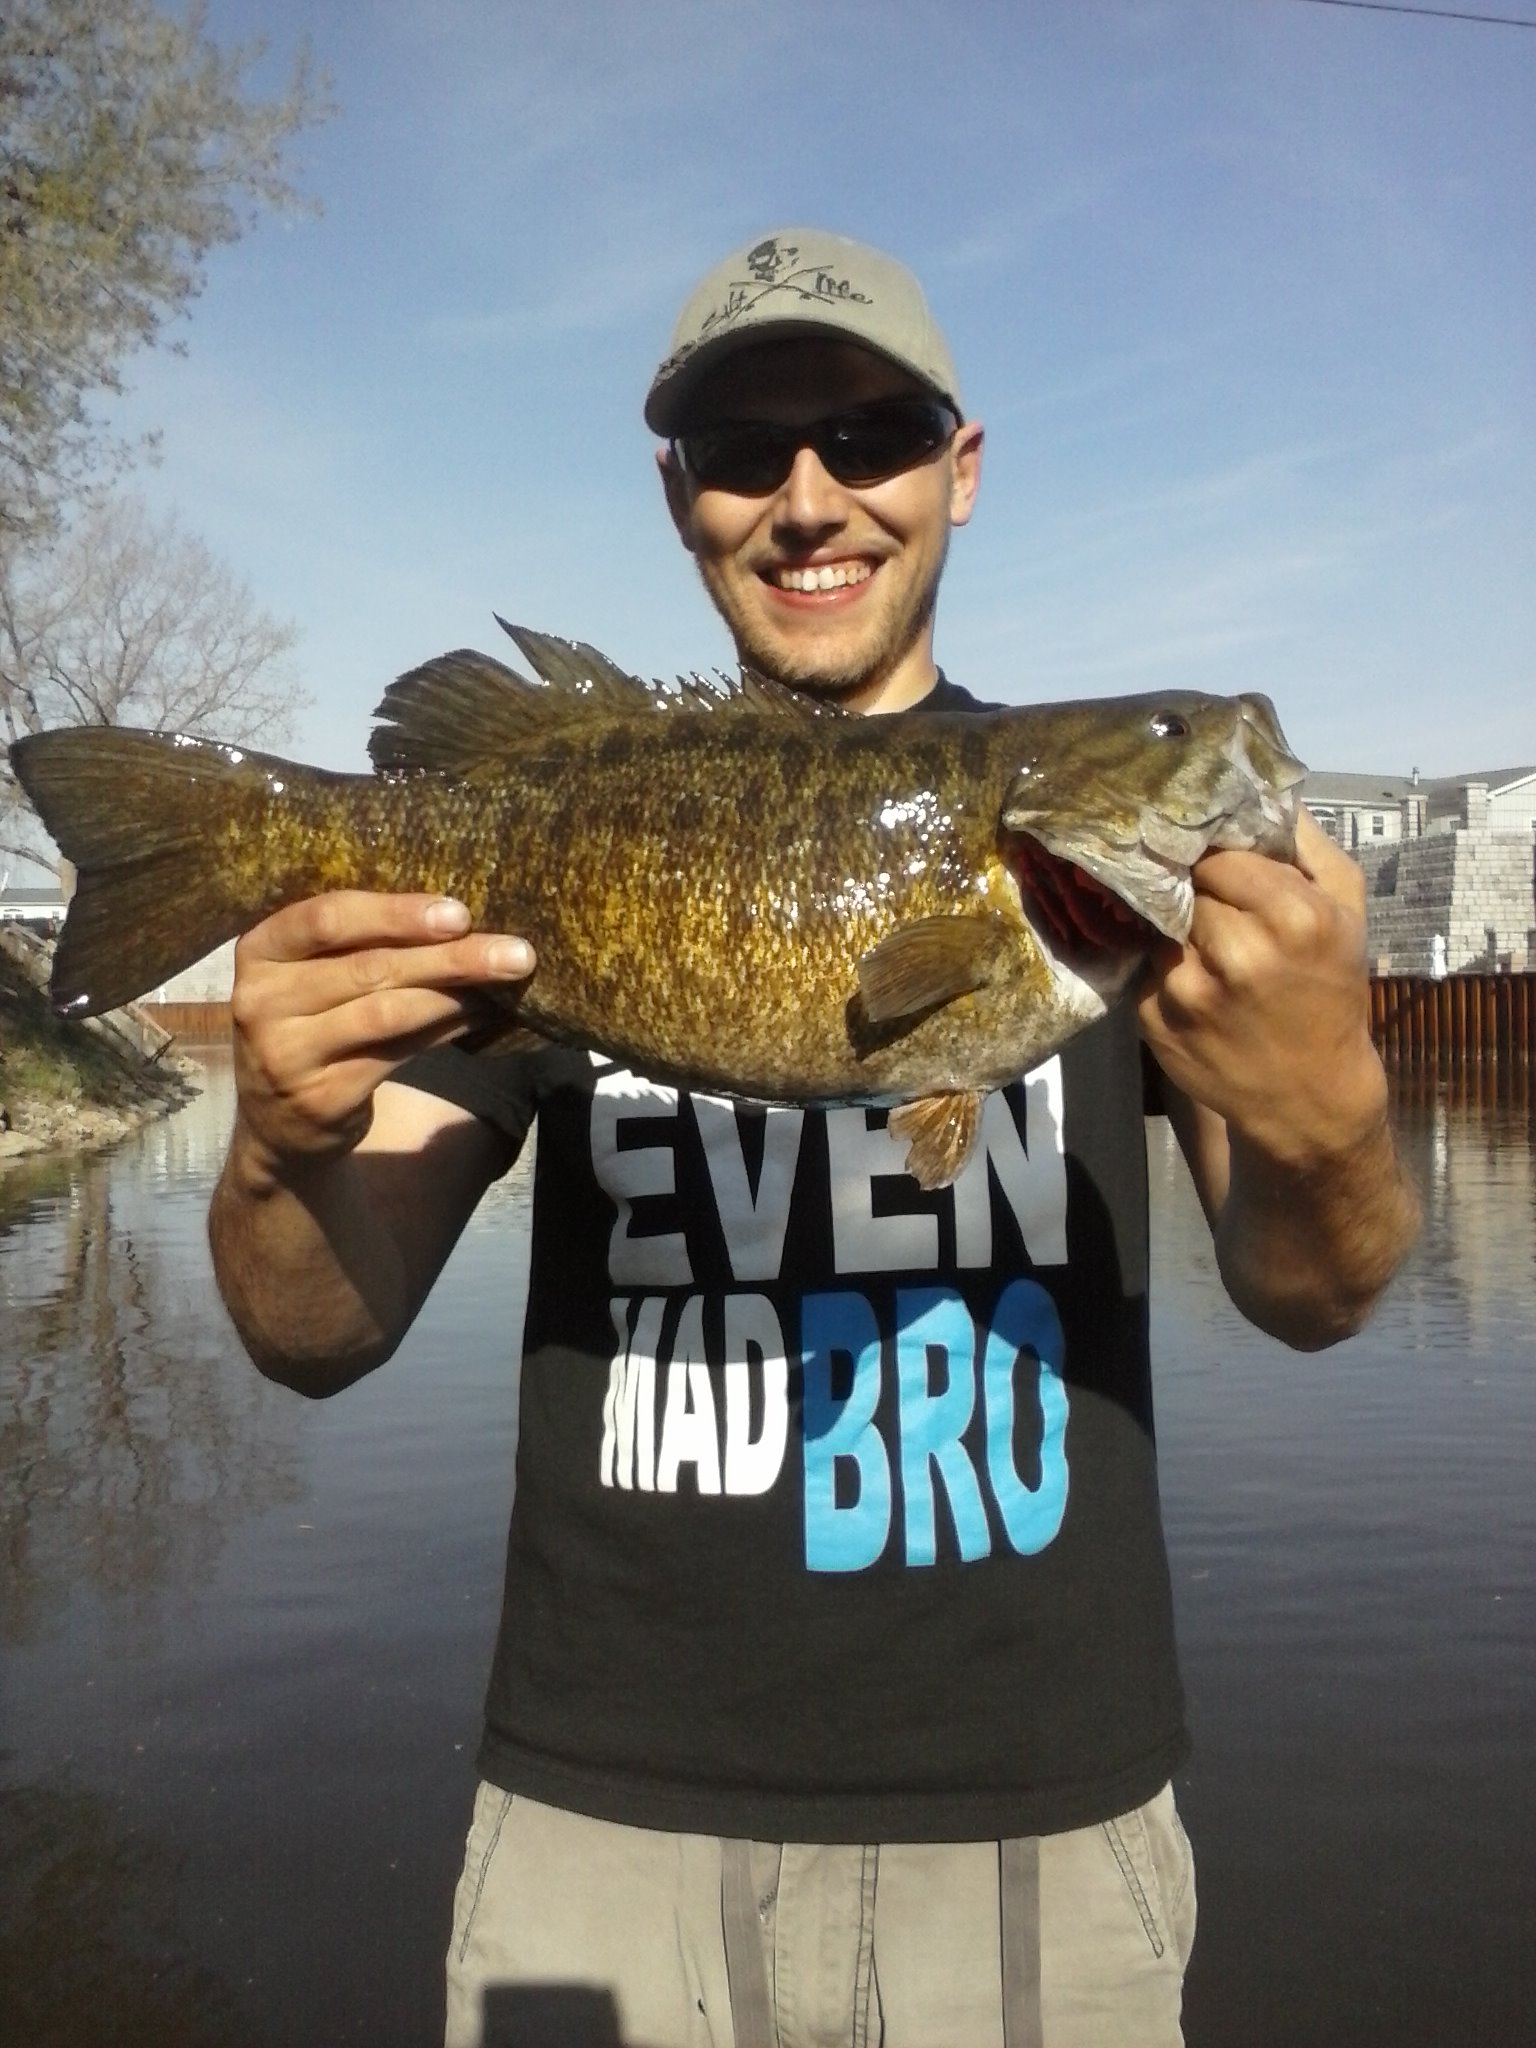 Smallie backbreaker